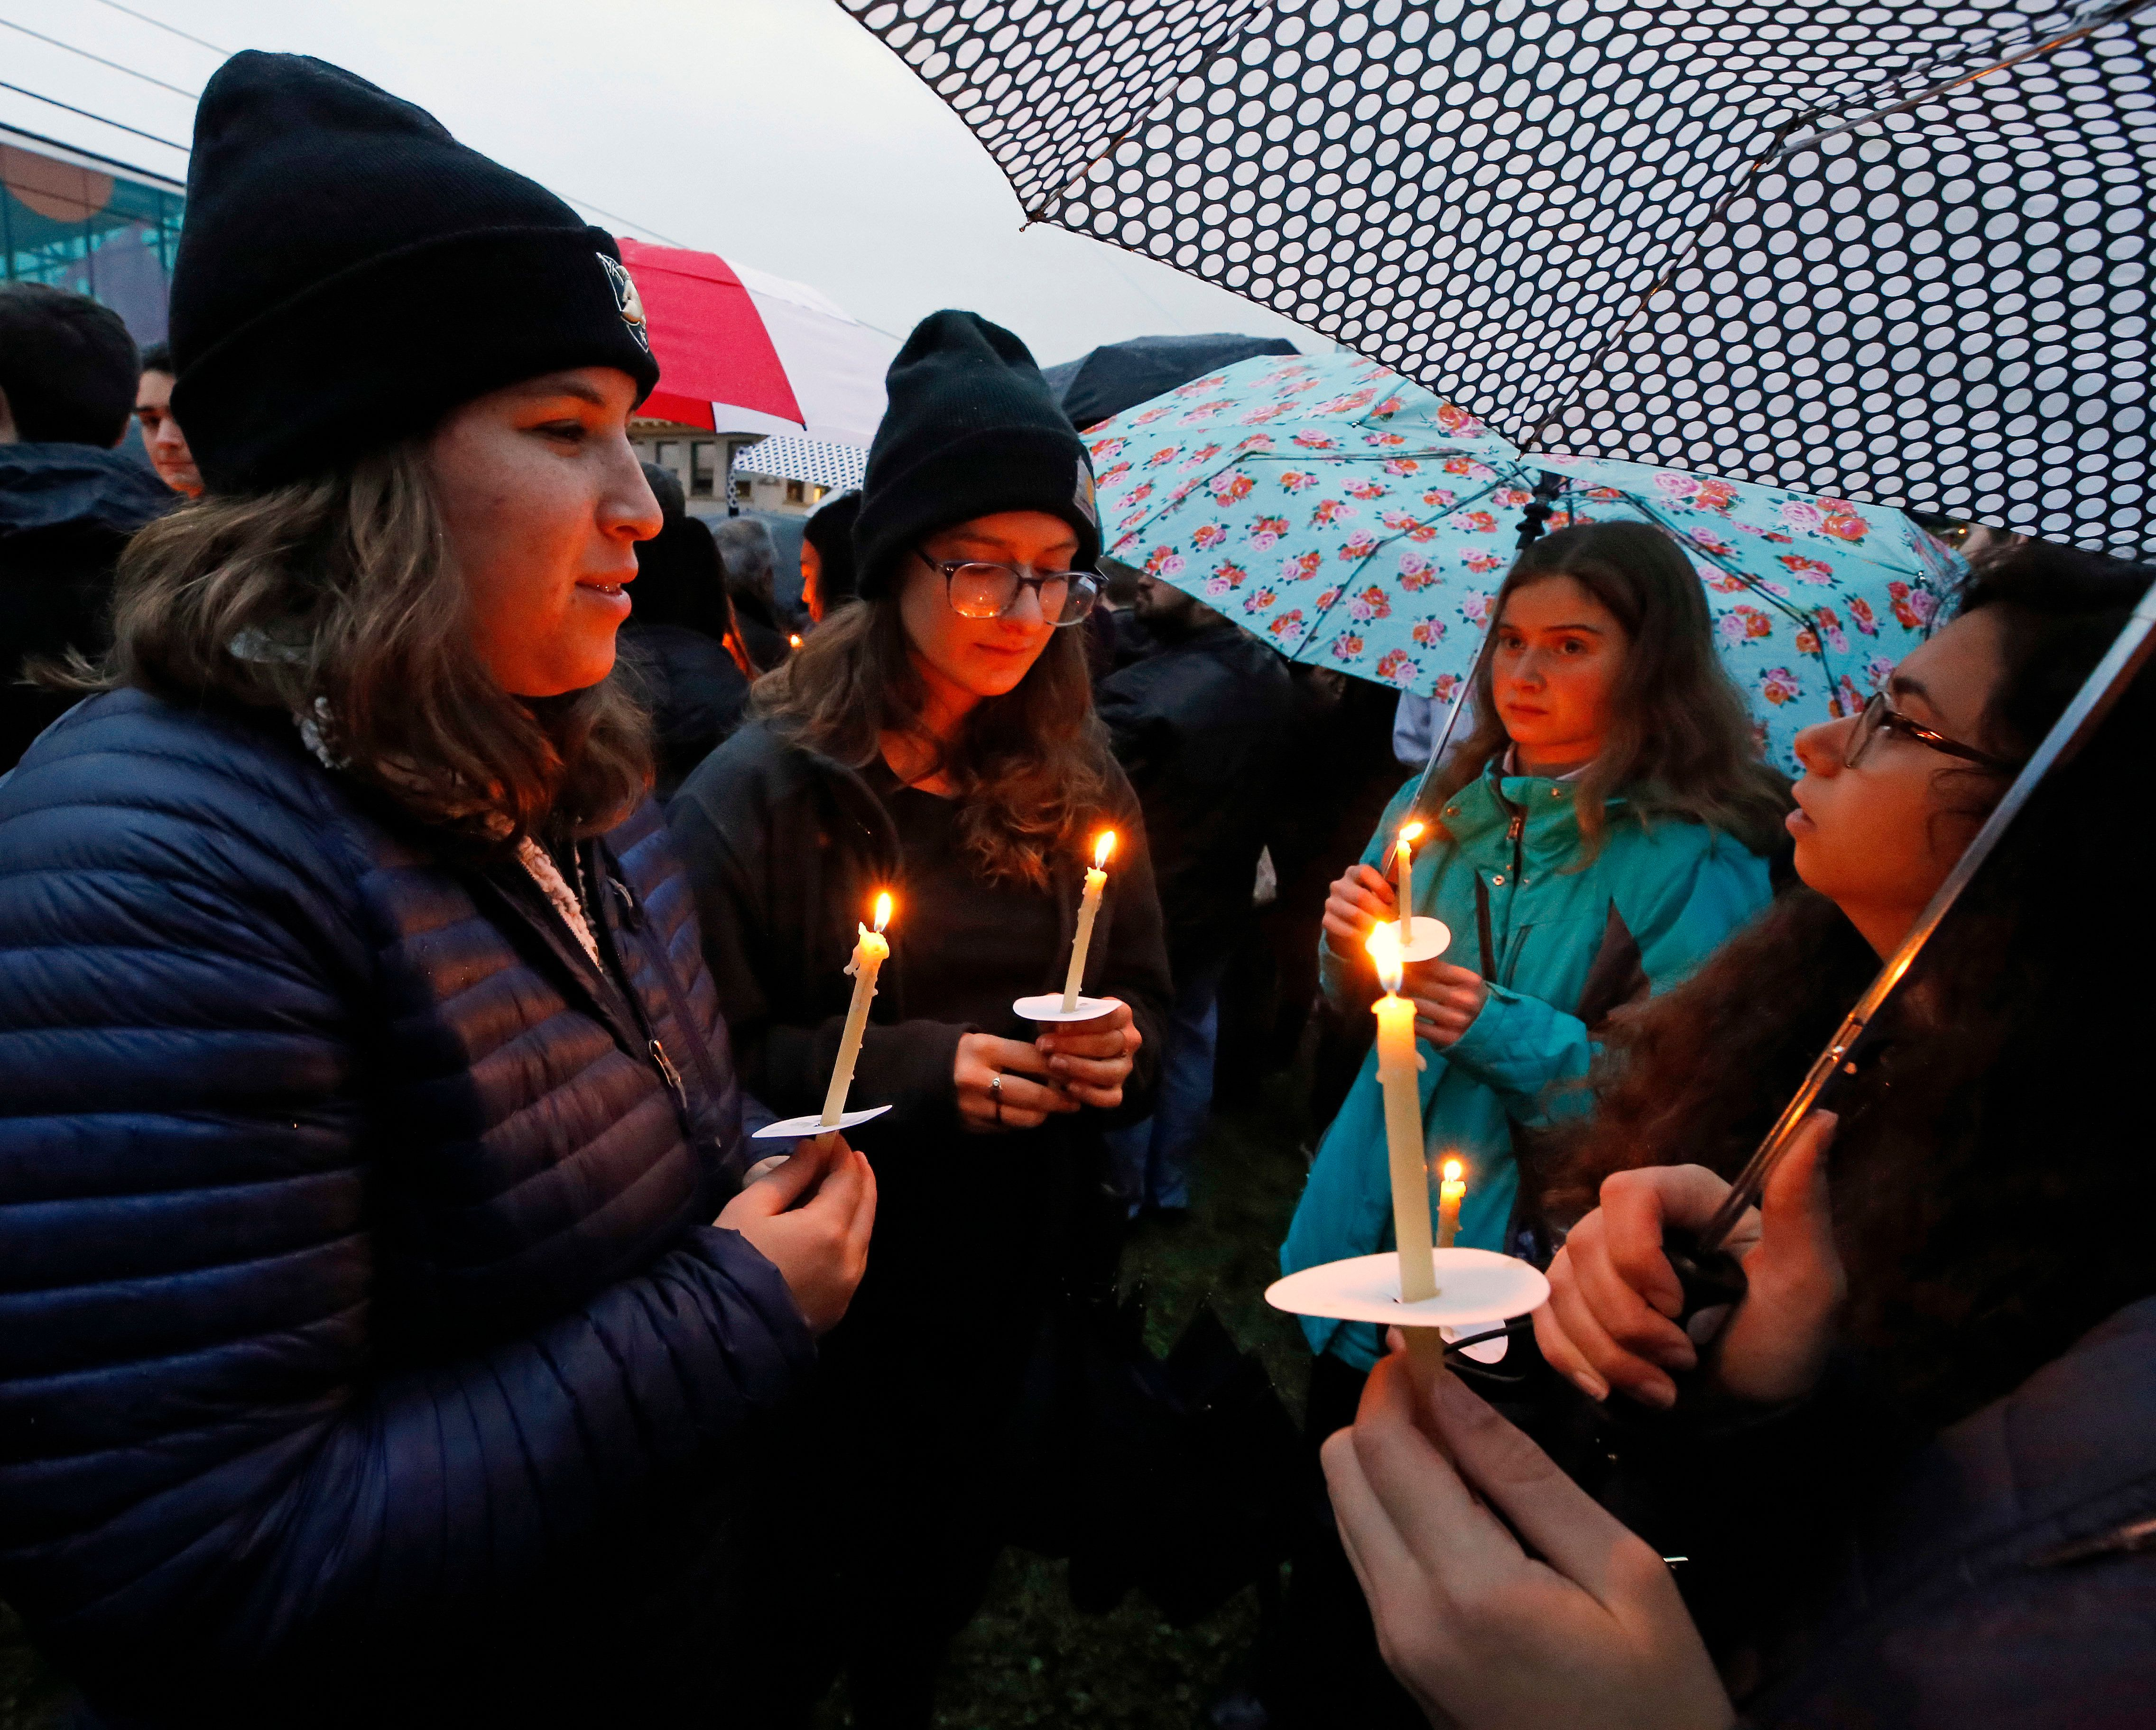 Pittsburgh Synagogue Shooting Victims Include 2 Brothers, Husband &